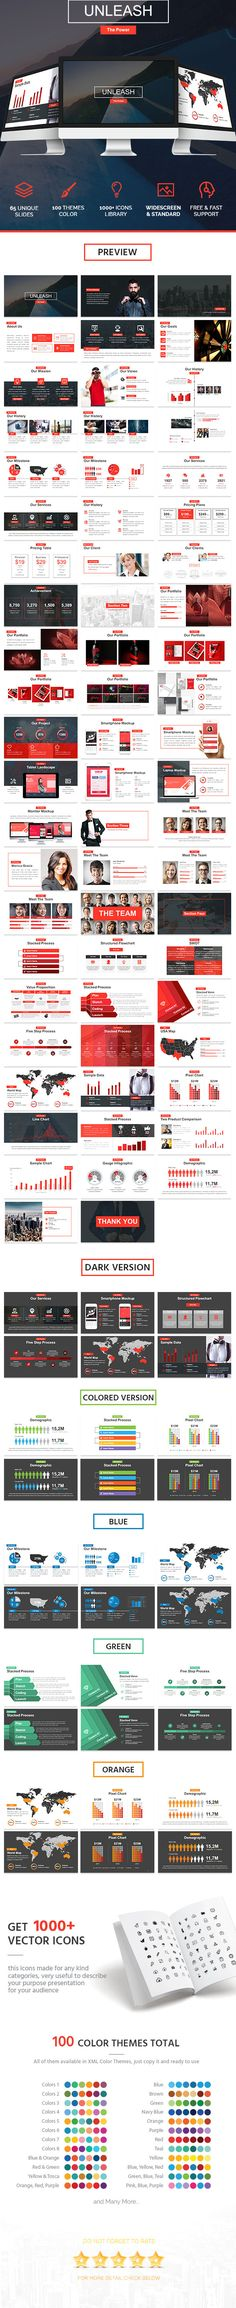 Unleash Powerpoint Template - Relase the Power!